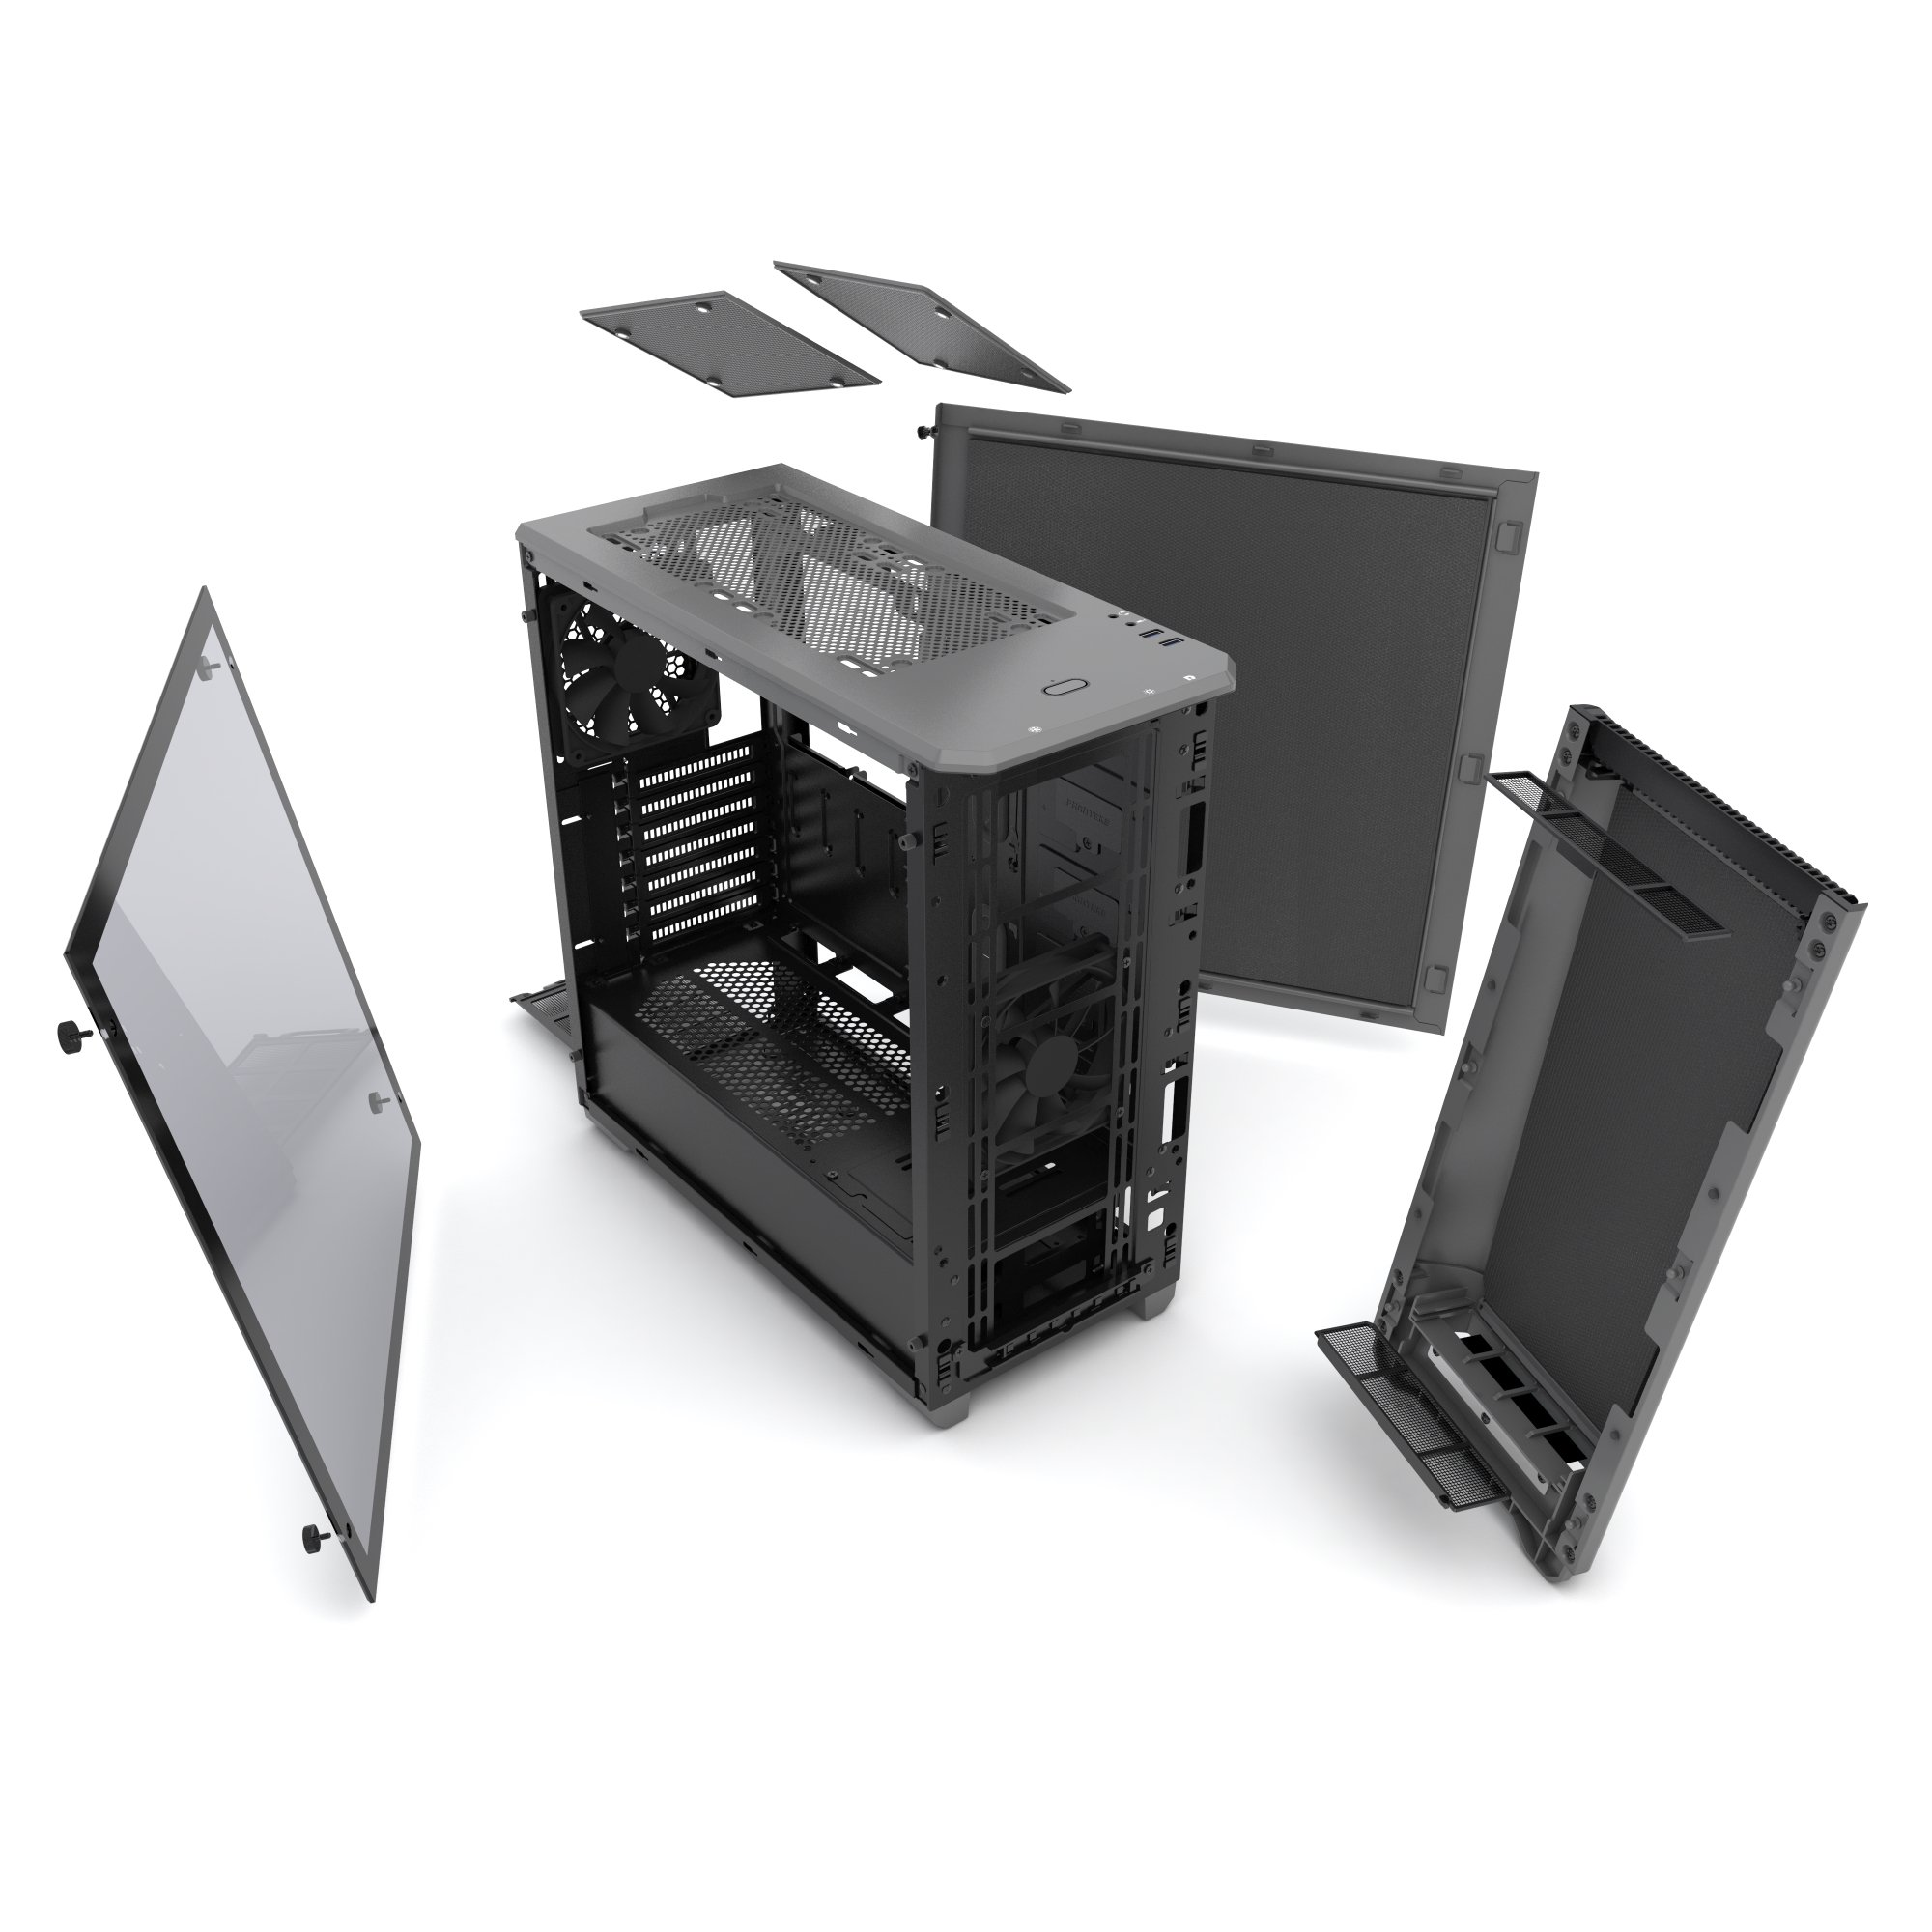 Phanteks PH-EC416PSTG_AG Eclipse P400S Silent Edition with Tempered Glass, Anthracite Grey Cases by Phanteks (Image #11)